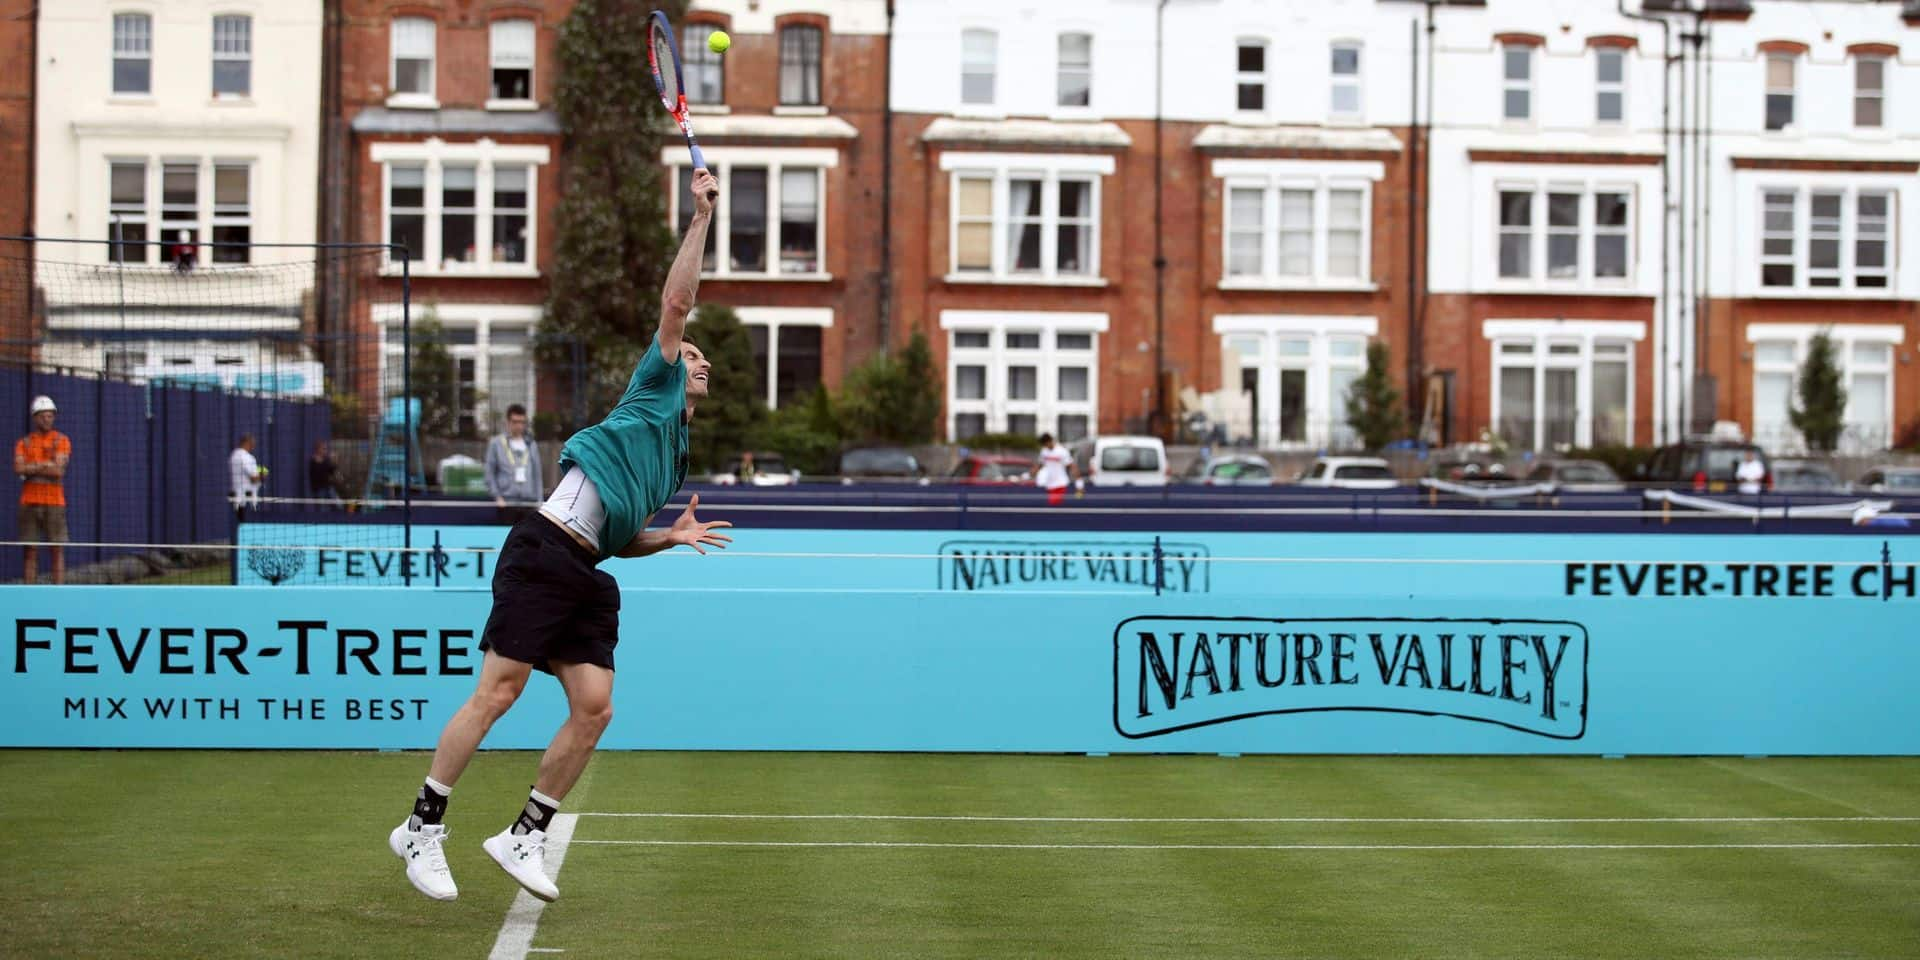 Britain's Andy Murray practices during a training session at the Queen's Club, in London, Friday June 15, 2018. (John Walton/PA via AP)